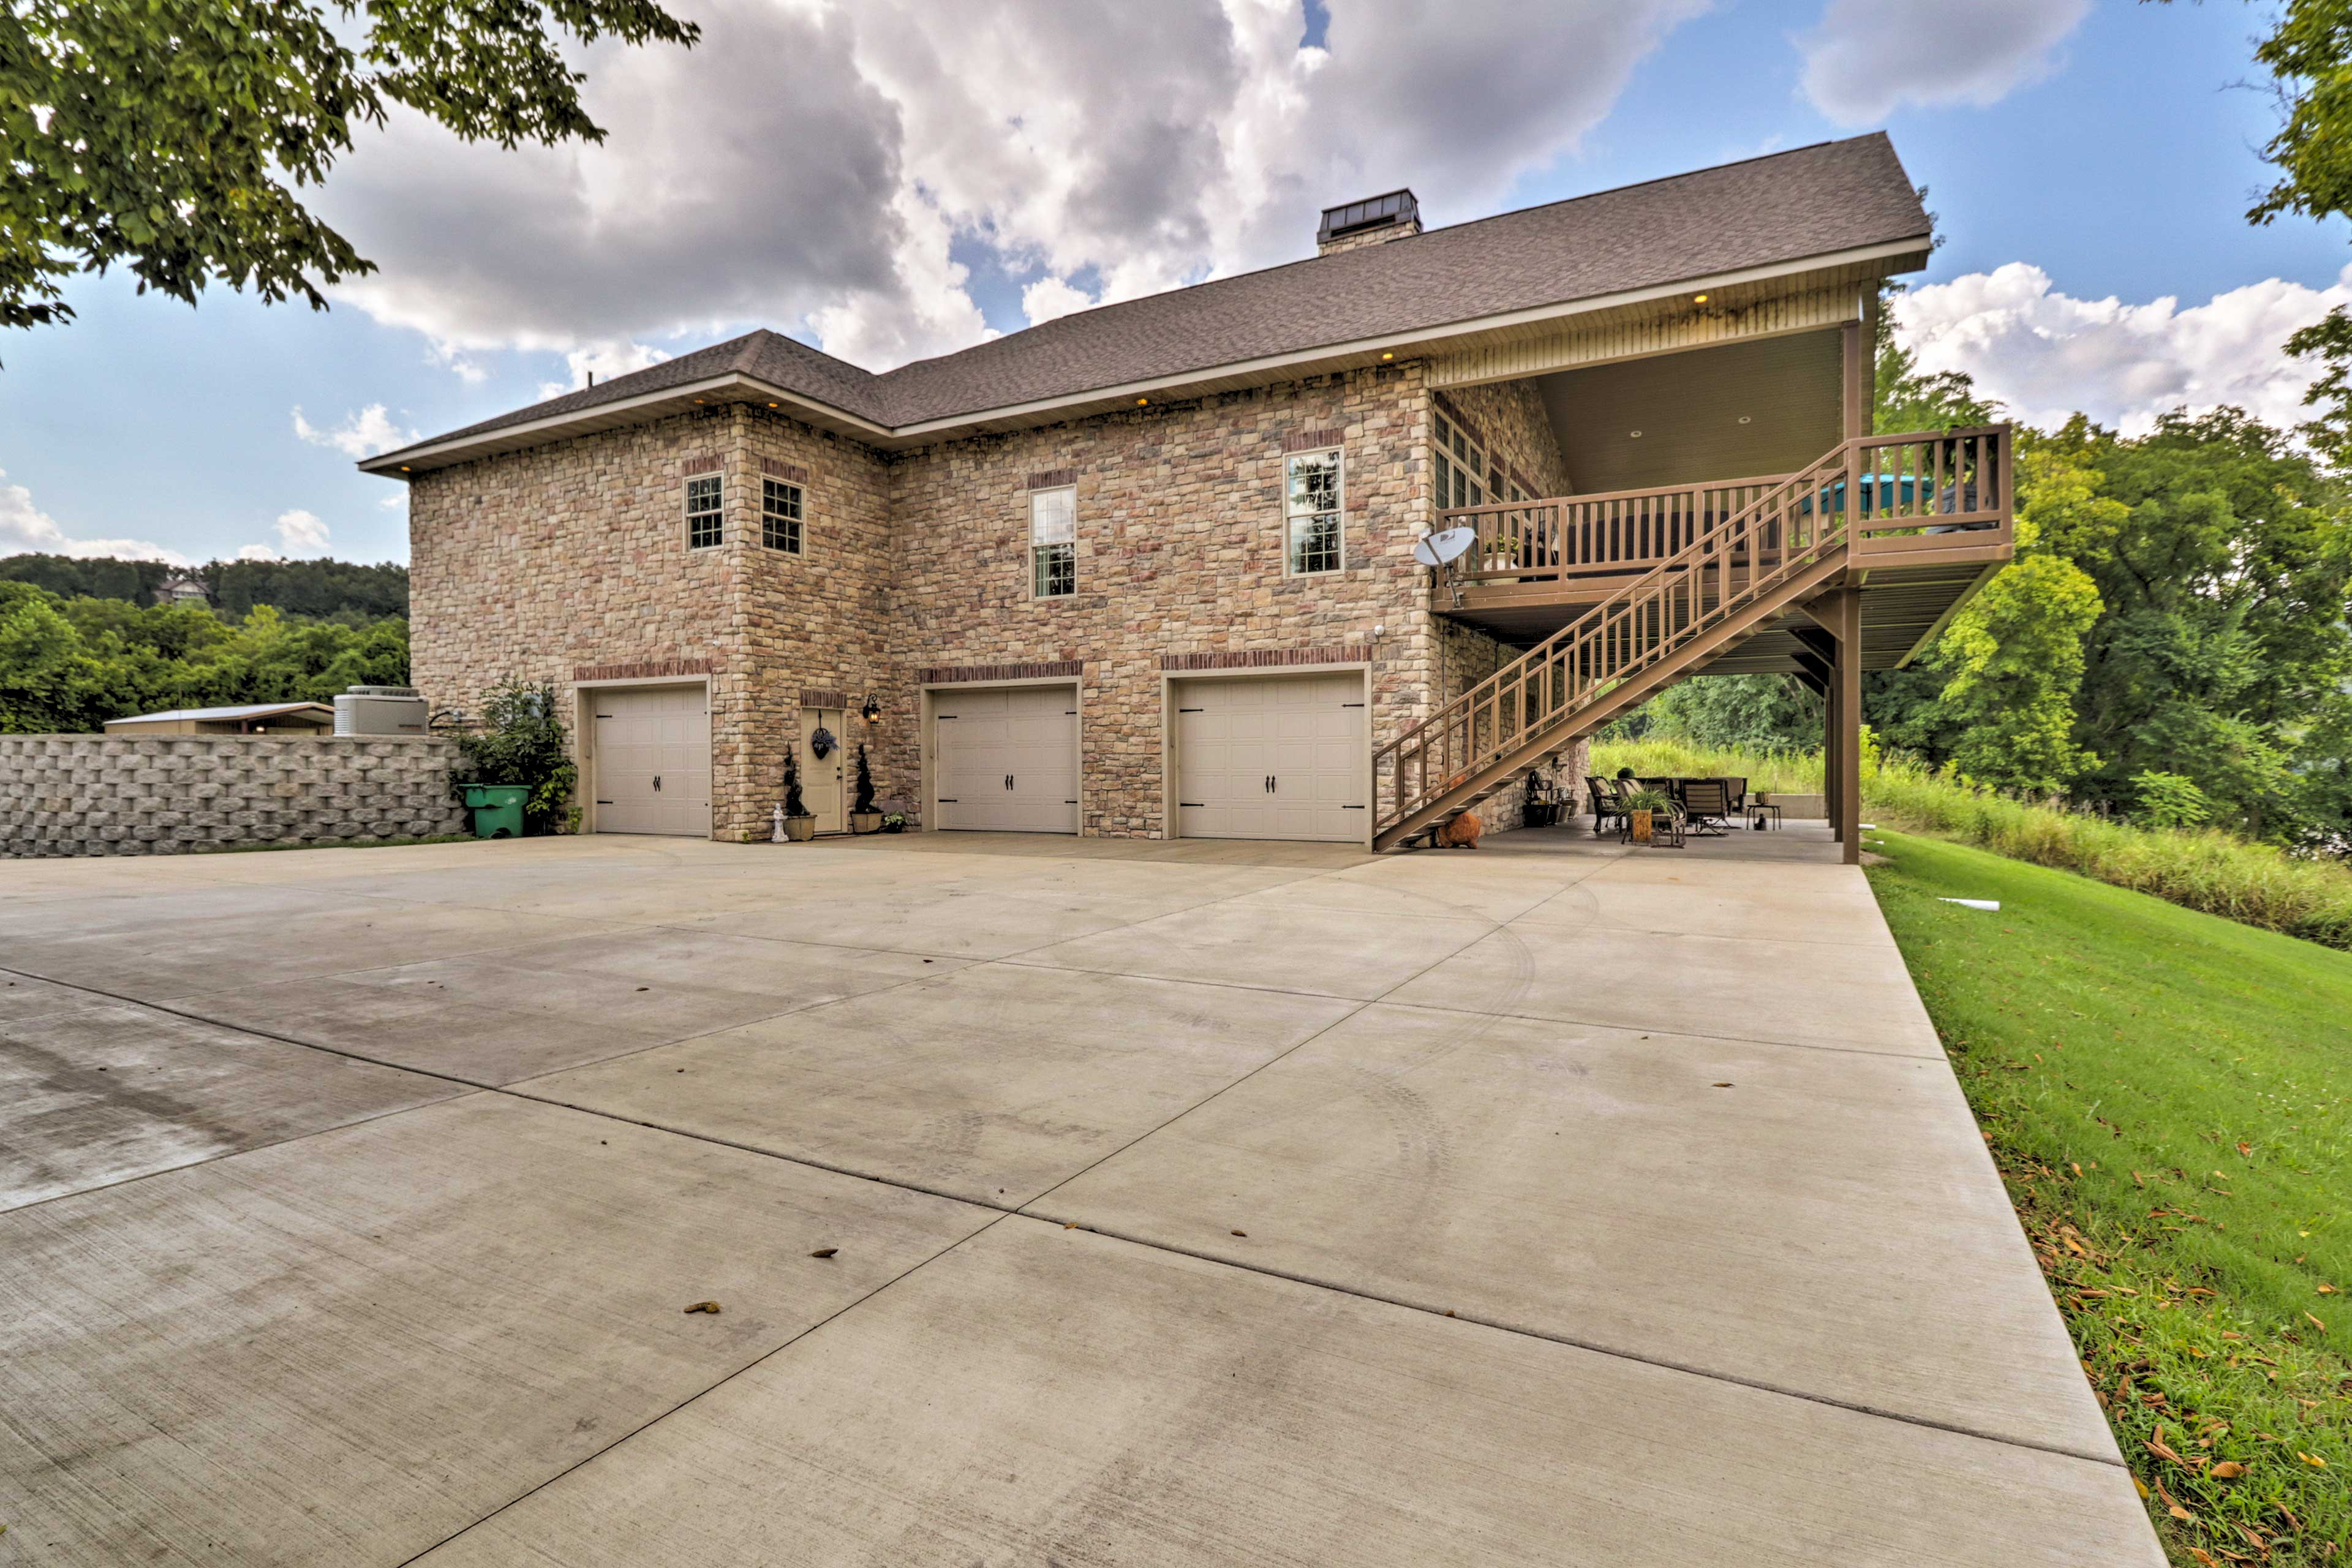 The lower patio offers even more seating and the driveway has plenty of room.